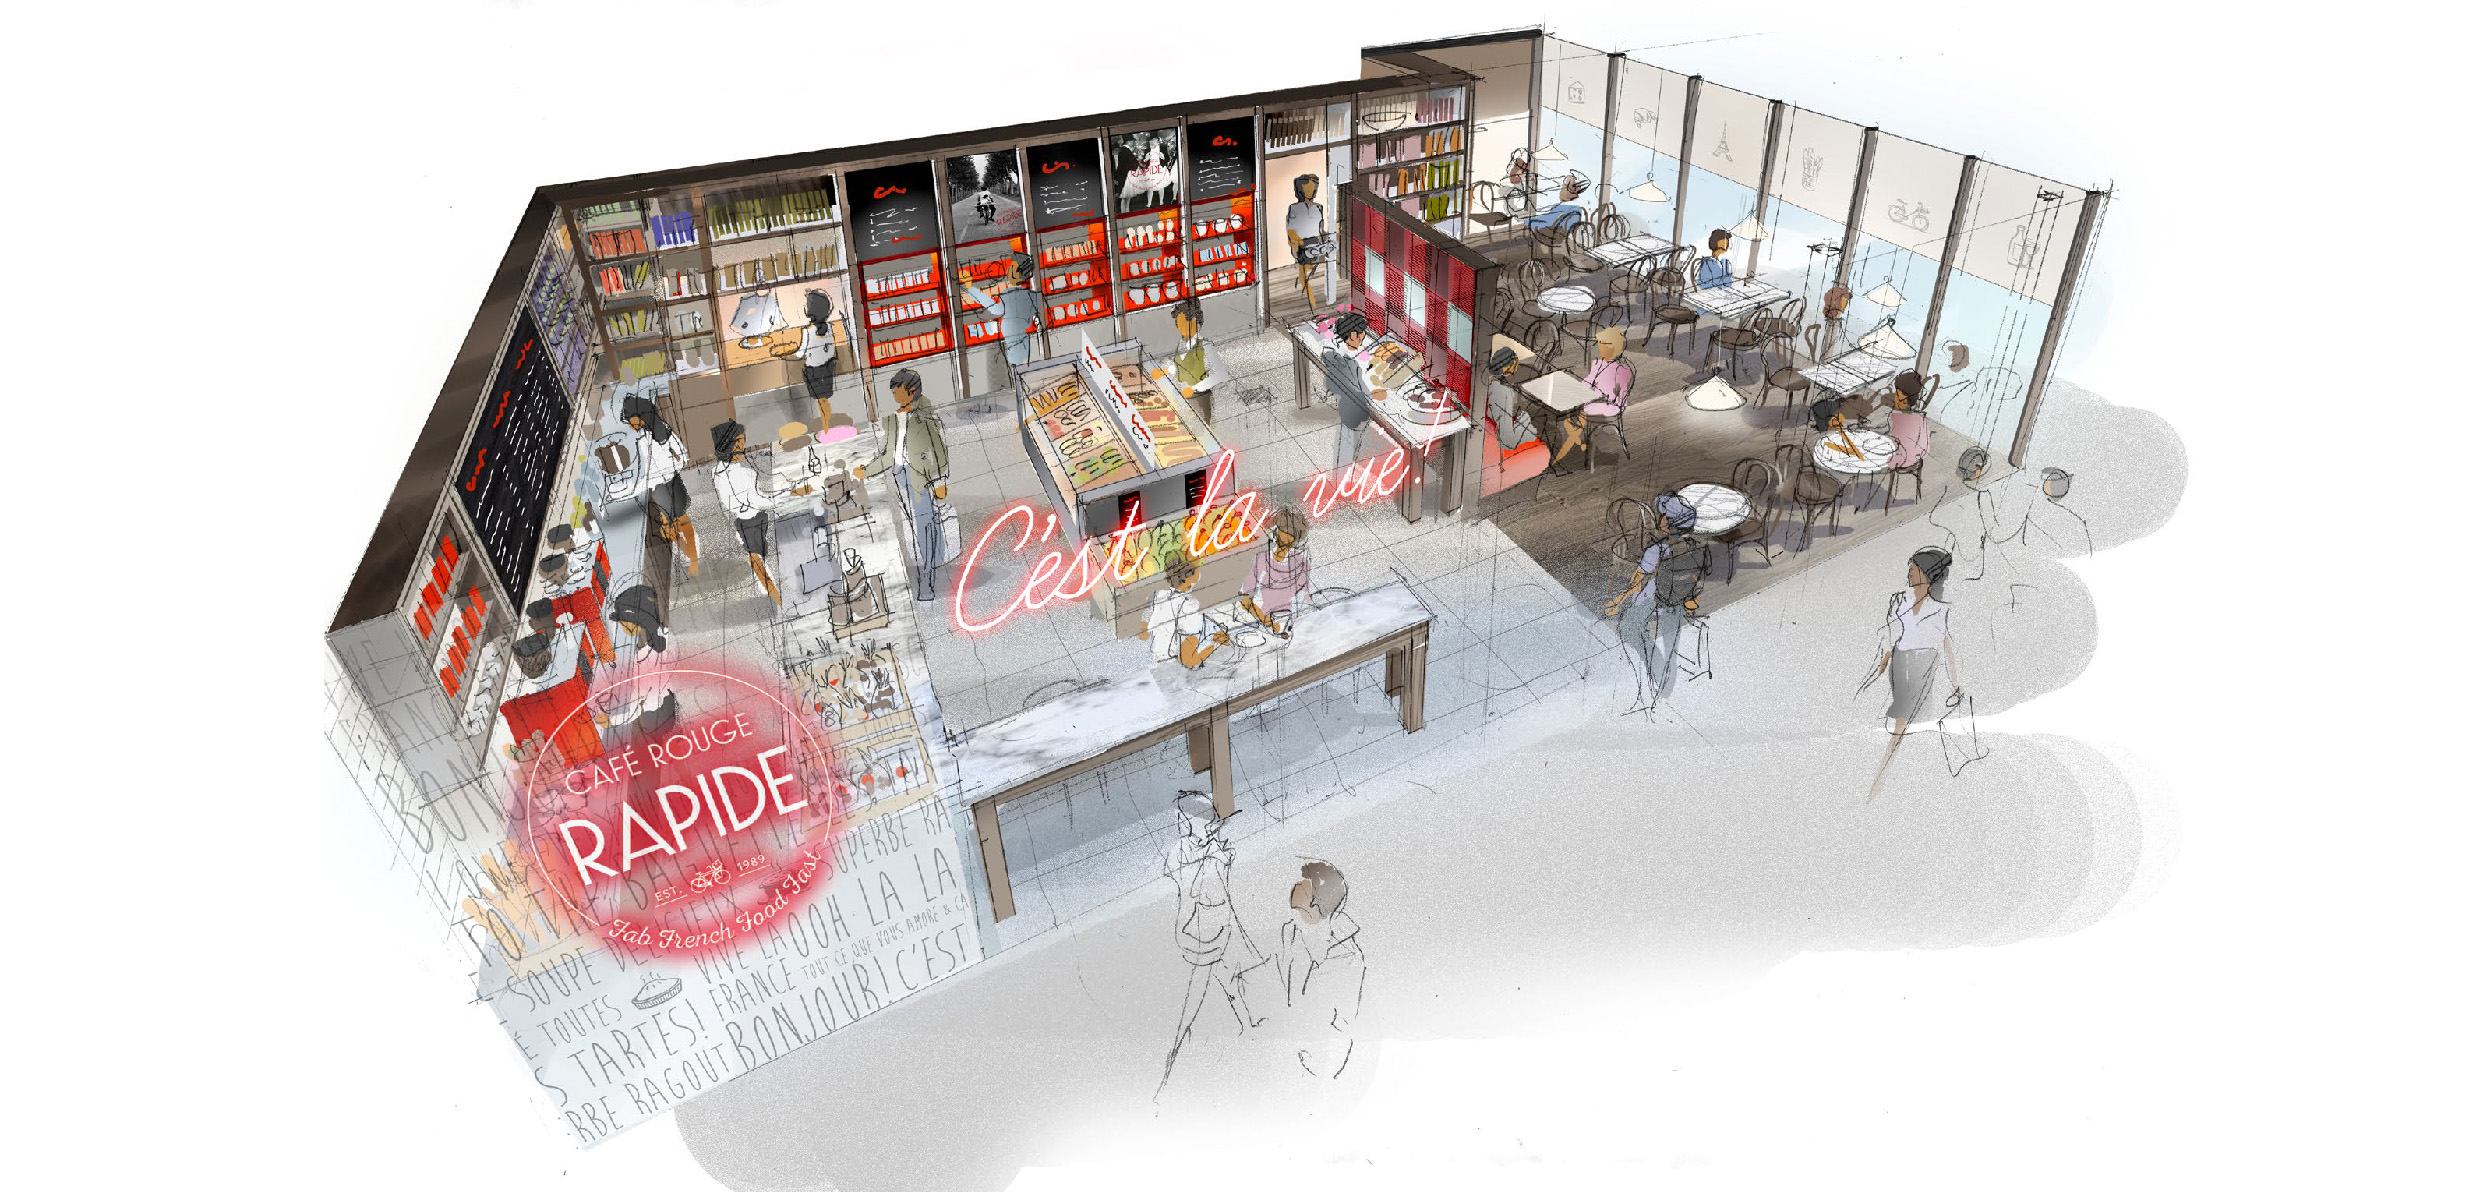 LMPP Cafe Rouge Interior Sketch.jpg